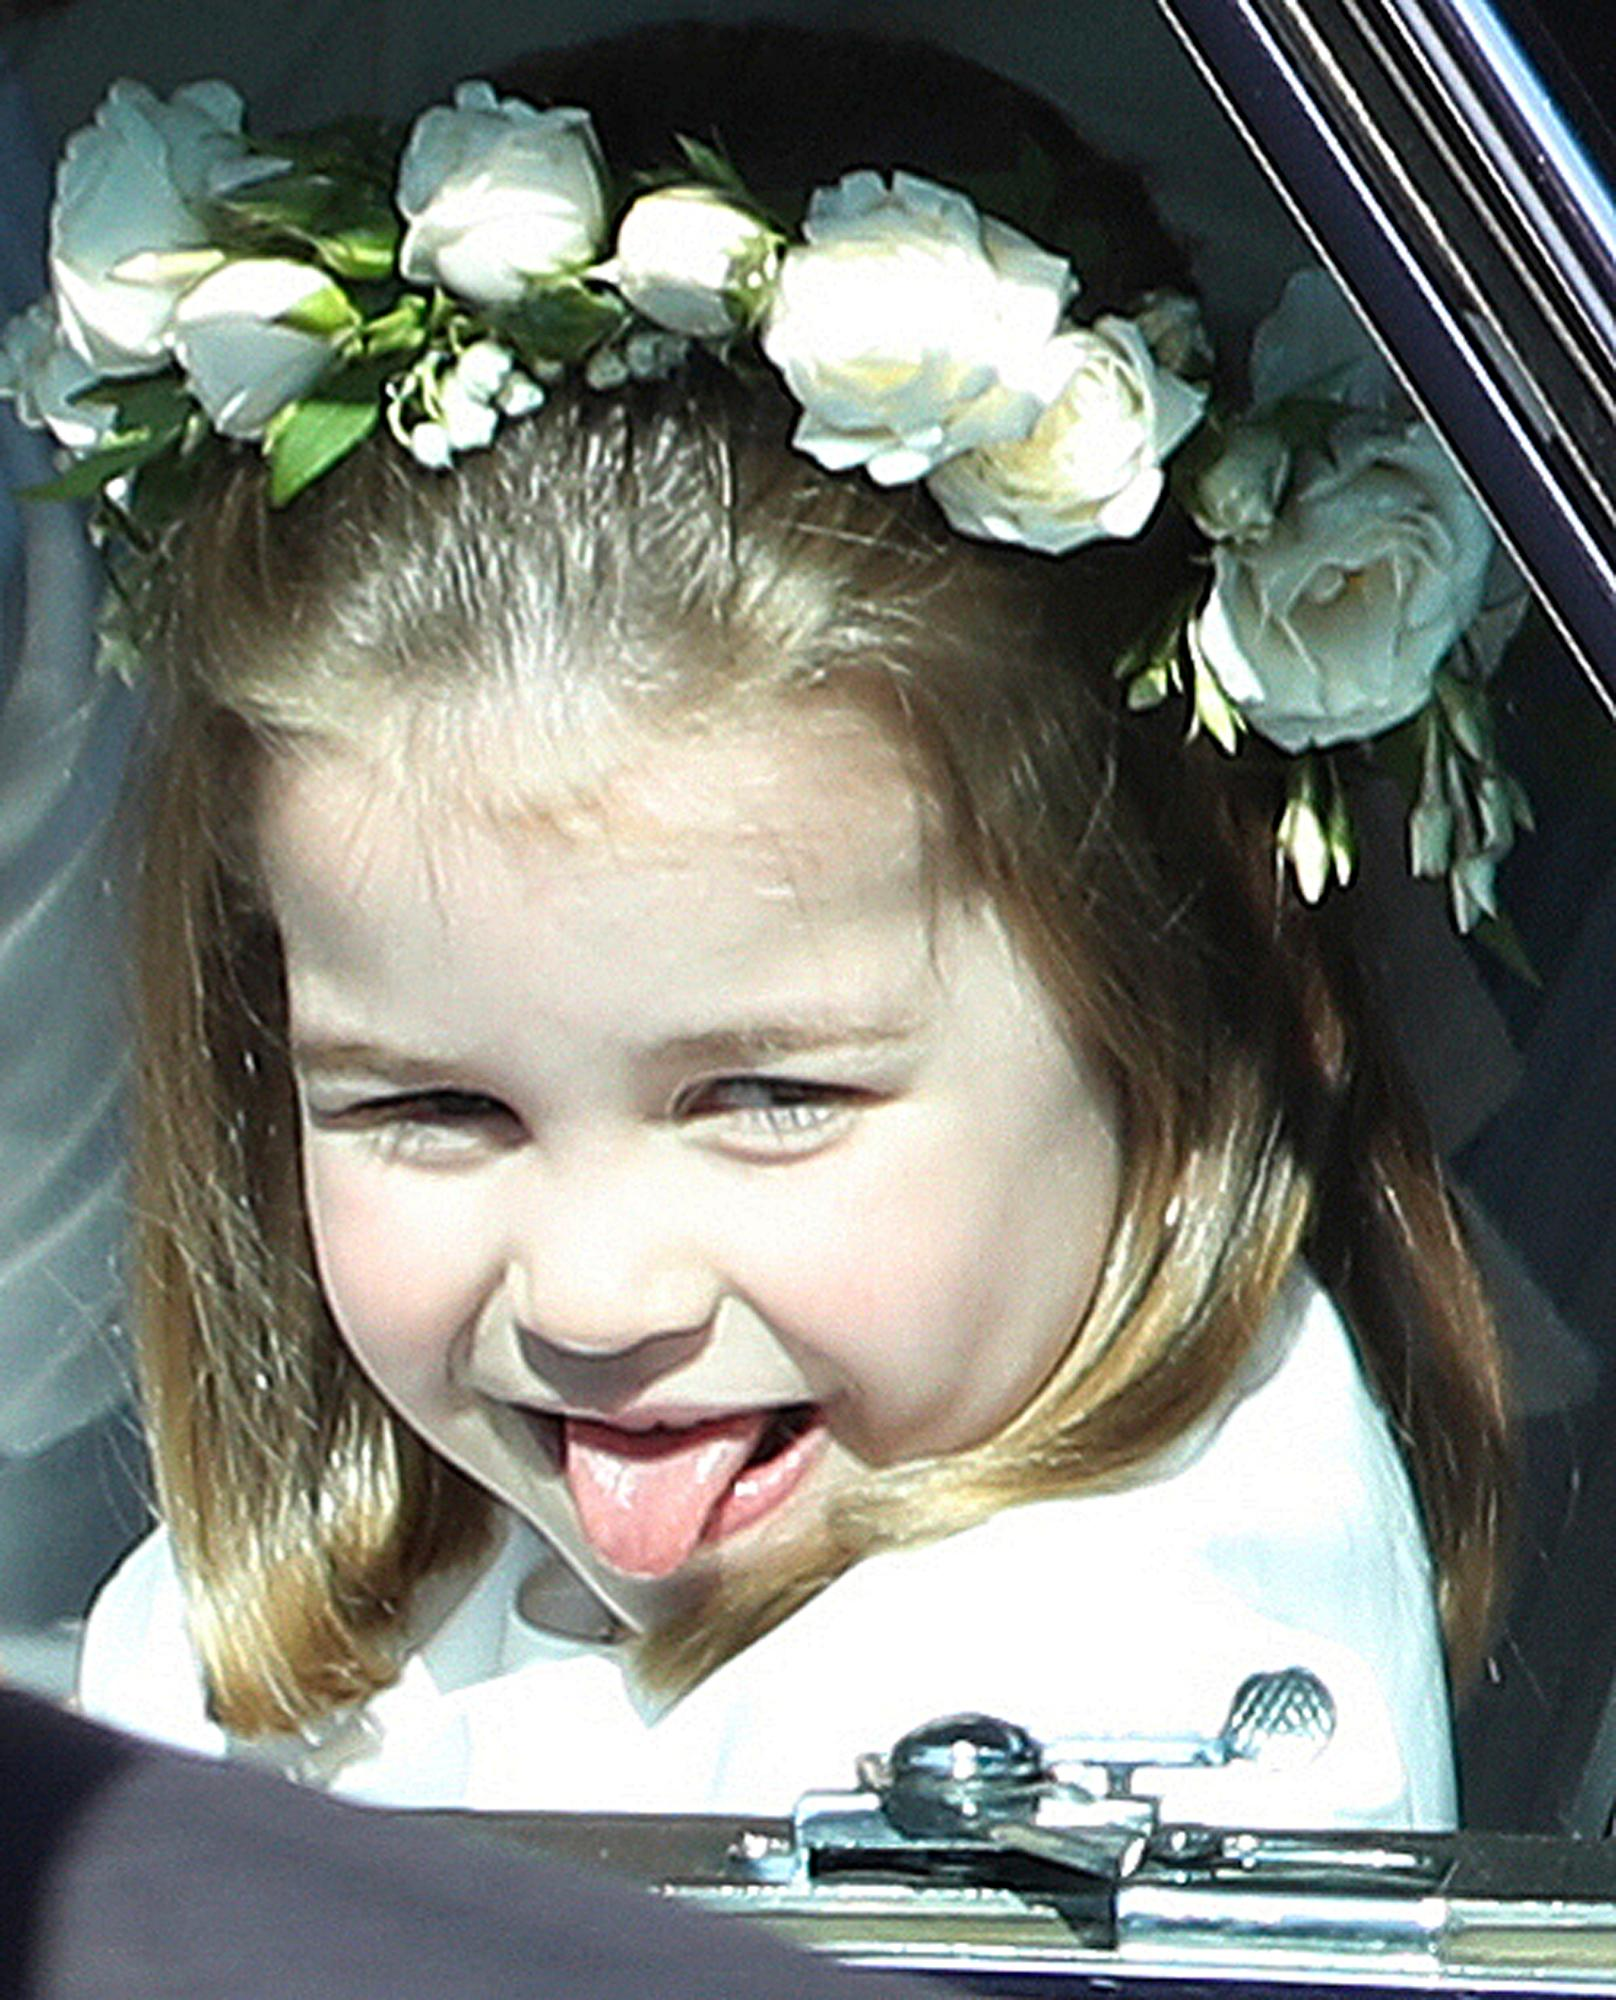 Princess Charlotte sticks out her tongue as she rides in a car to the wedding ceremony of Prince Harry and Meghan Markle at St. George's Chapel in Windsor Castle in Windsor, near London, England, Saturday, May 19, 2018. (Andrew Milligan/pool photo via AP)